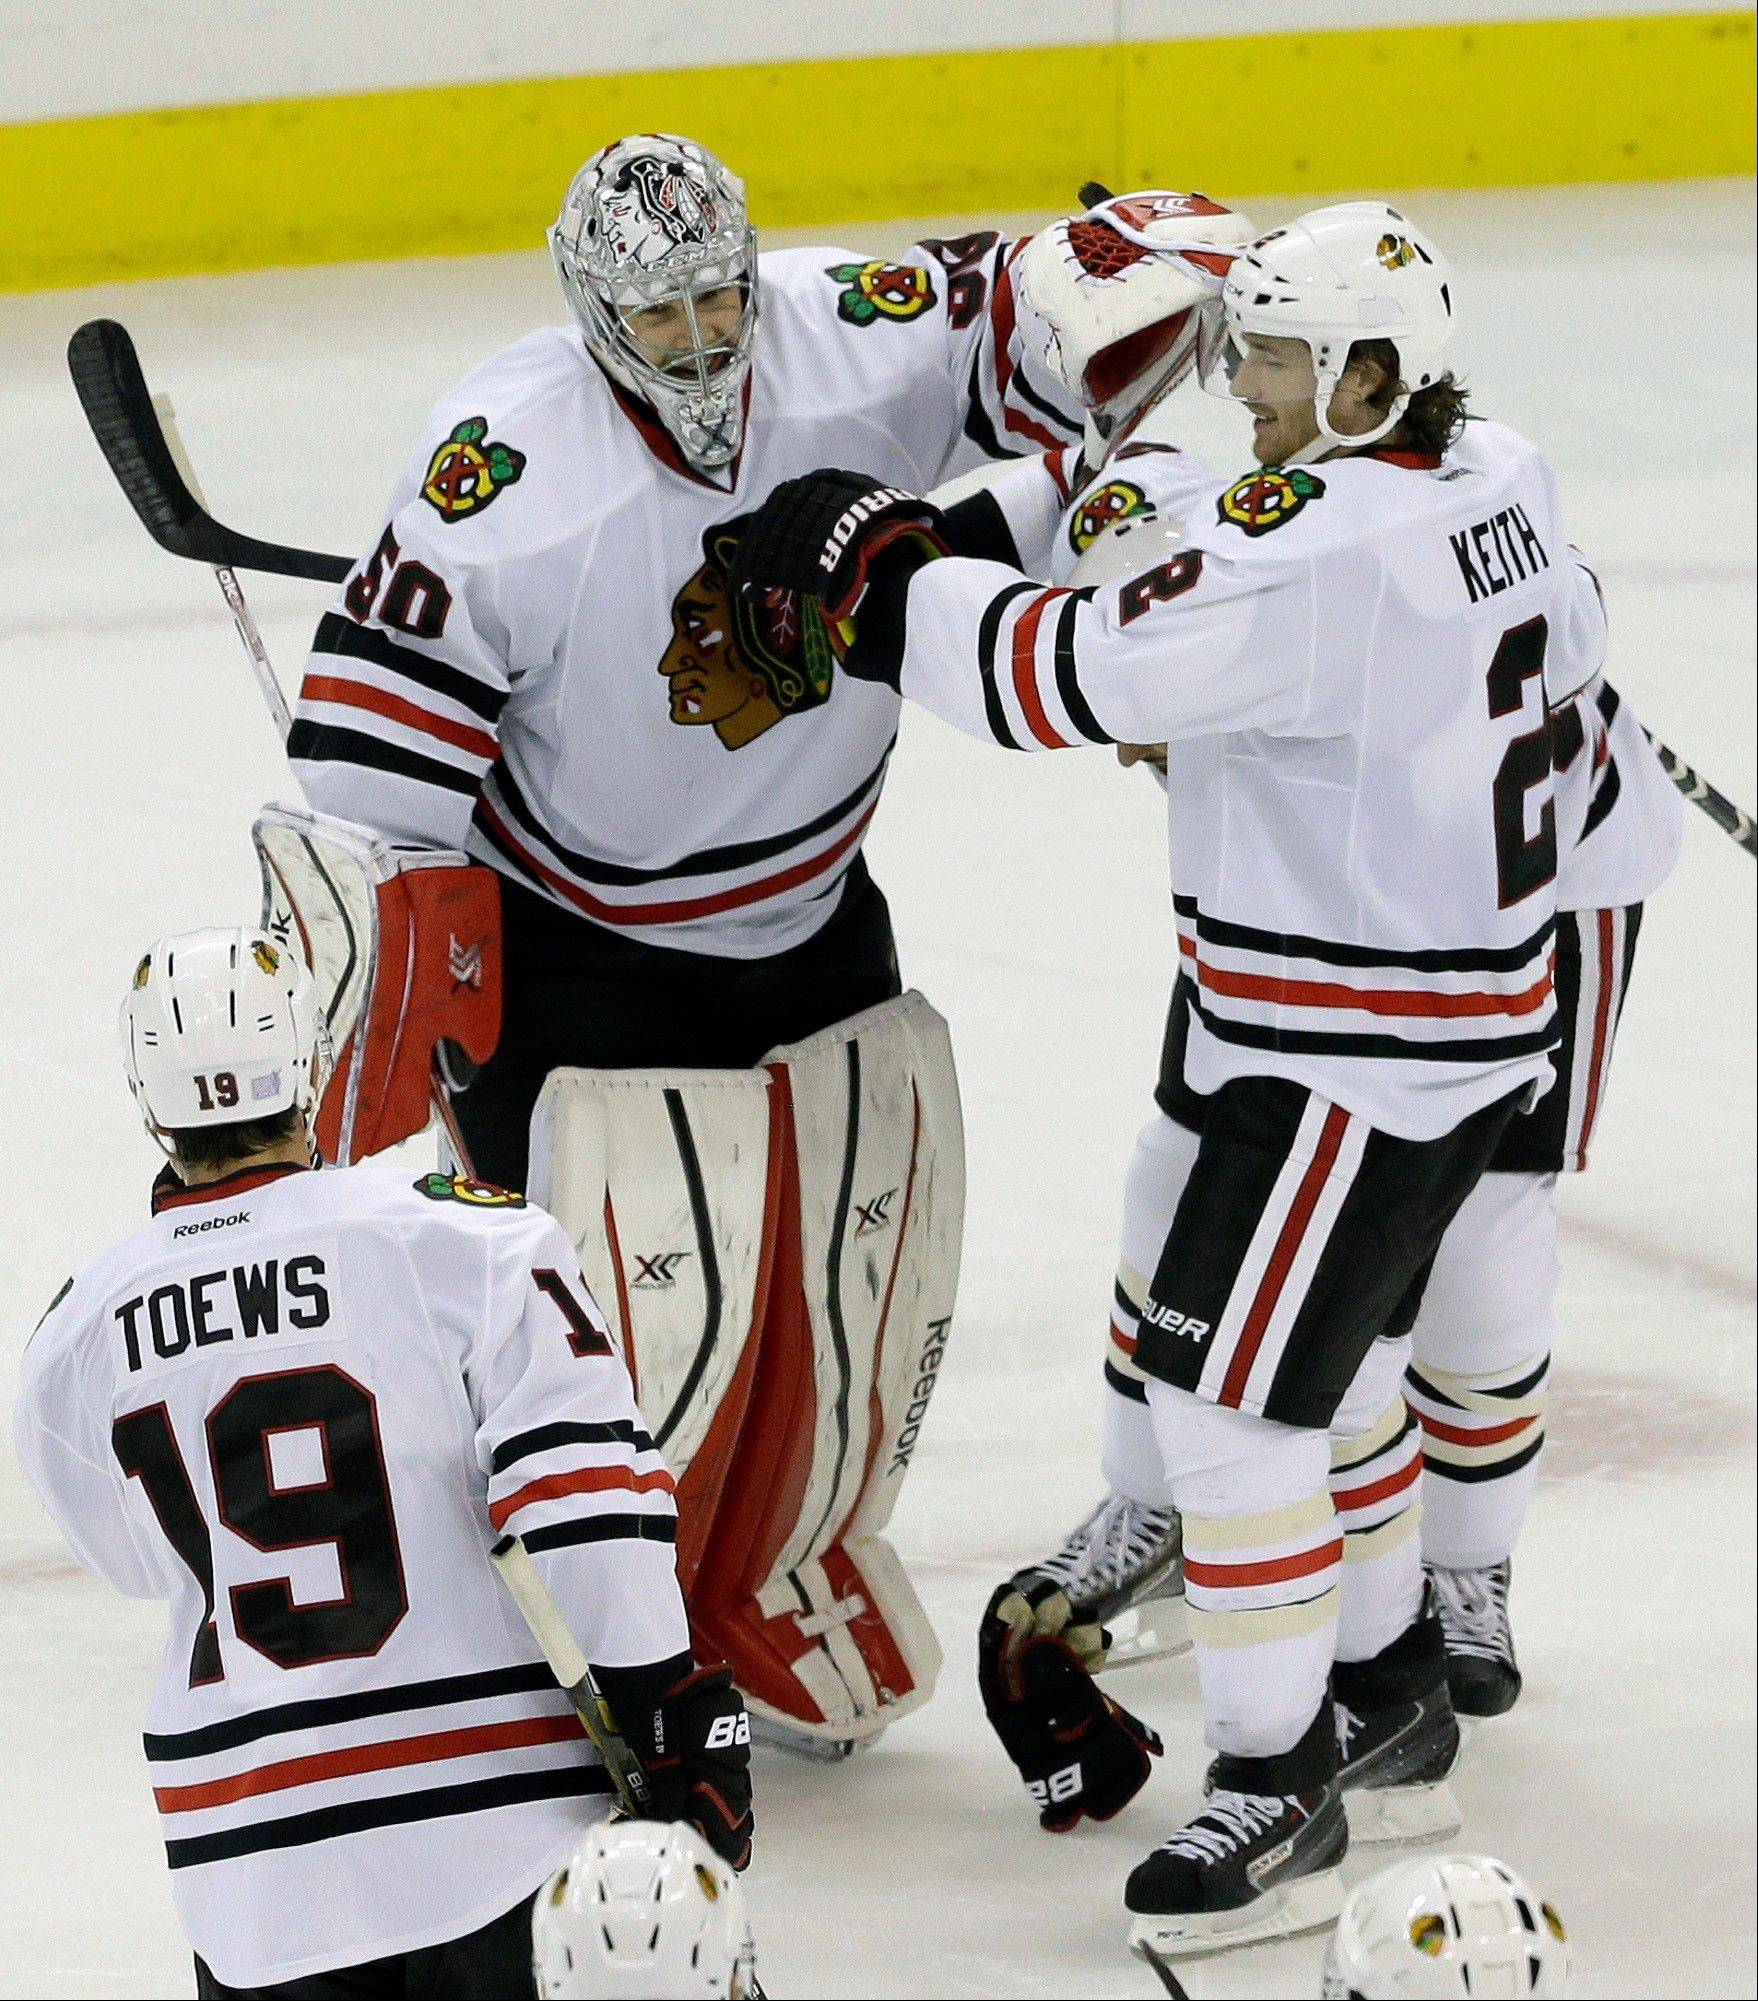 Chicago Blackhawks goalie Corey Crawford (50) is congratulated by Duncan Keith (2) and Jonathan Toews (19) following a shootout during an NHL hockey game against the Carolina Hurricanes in Raleigh, N.C., Tuesday, Oct. 15, 2013. Chicago won 3-2.